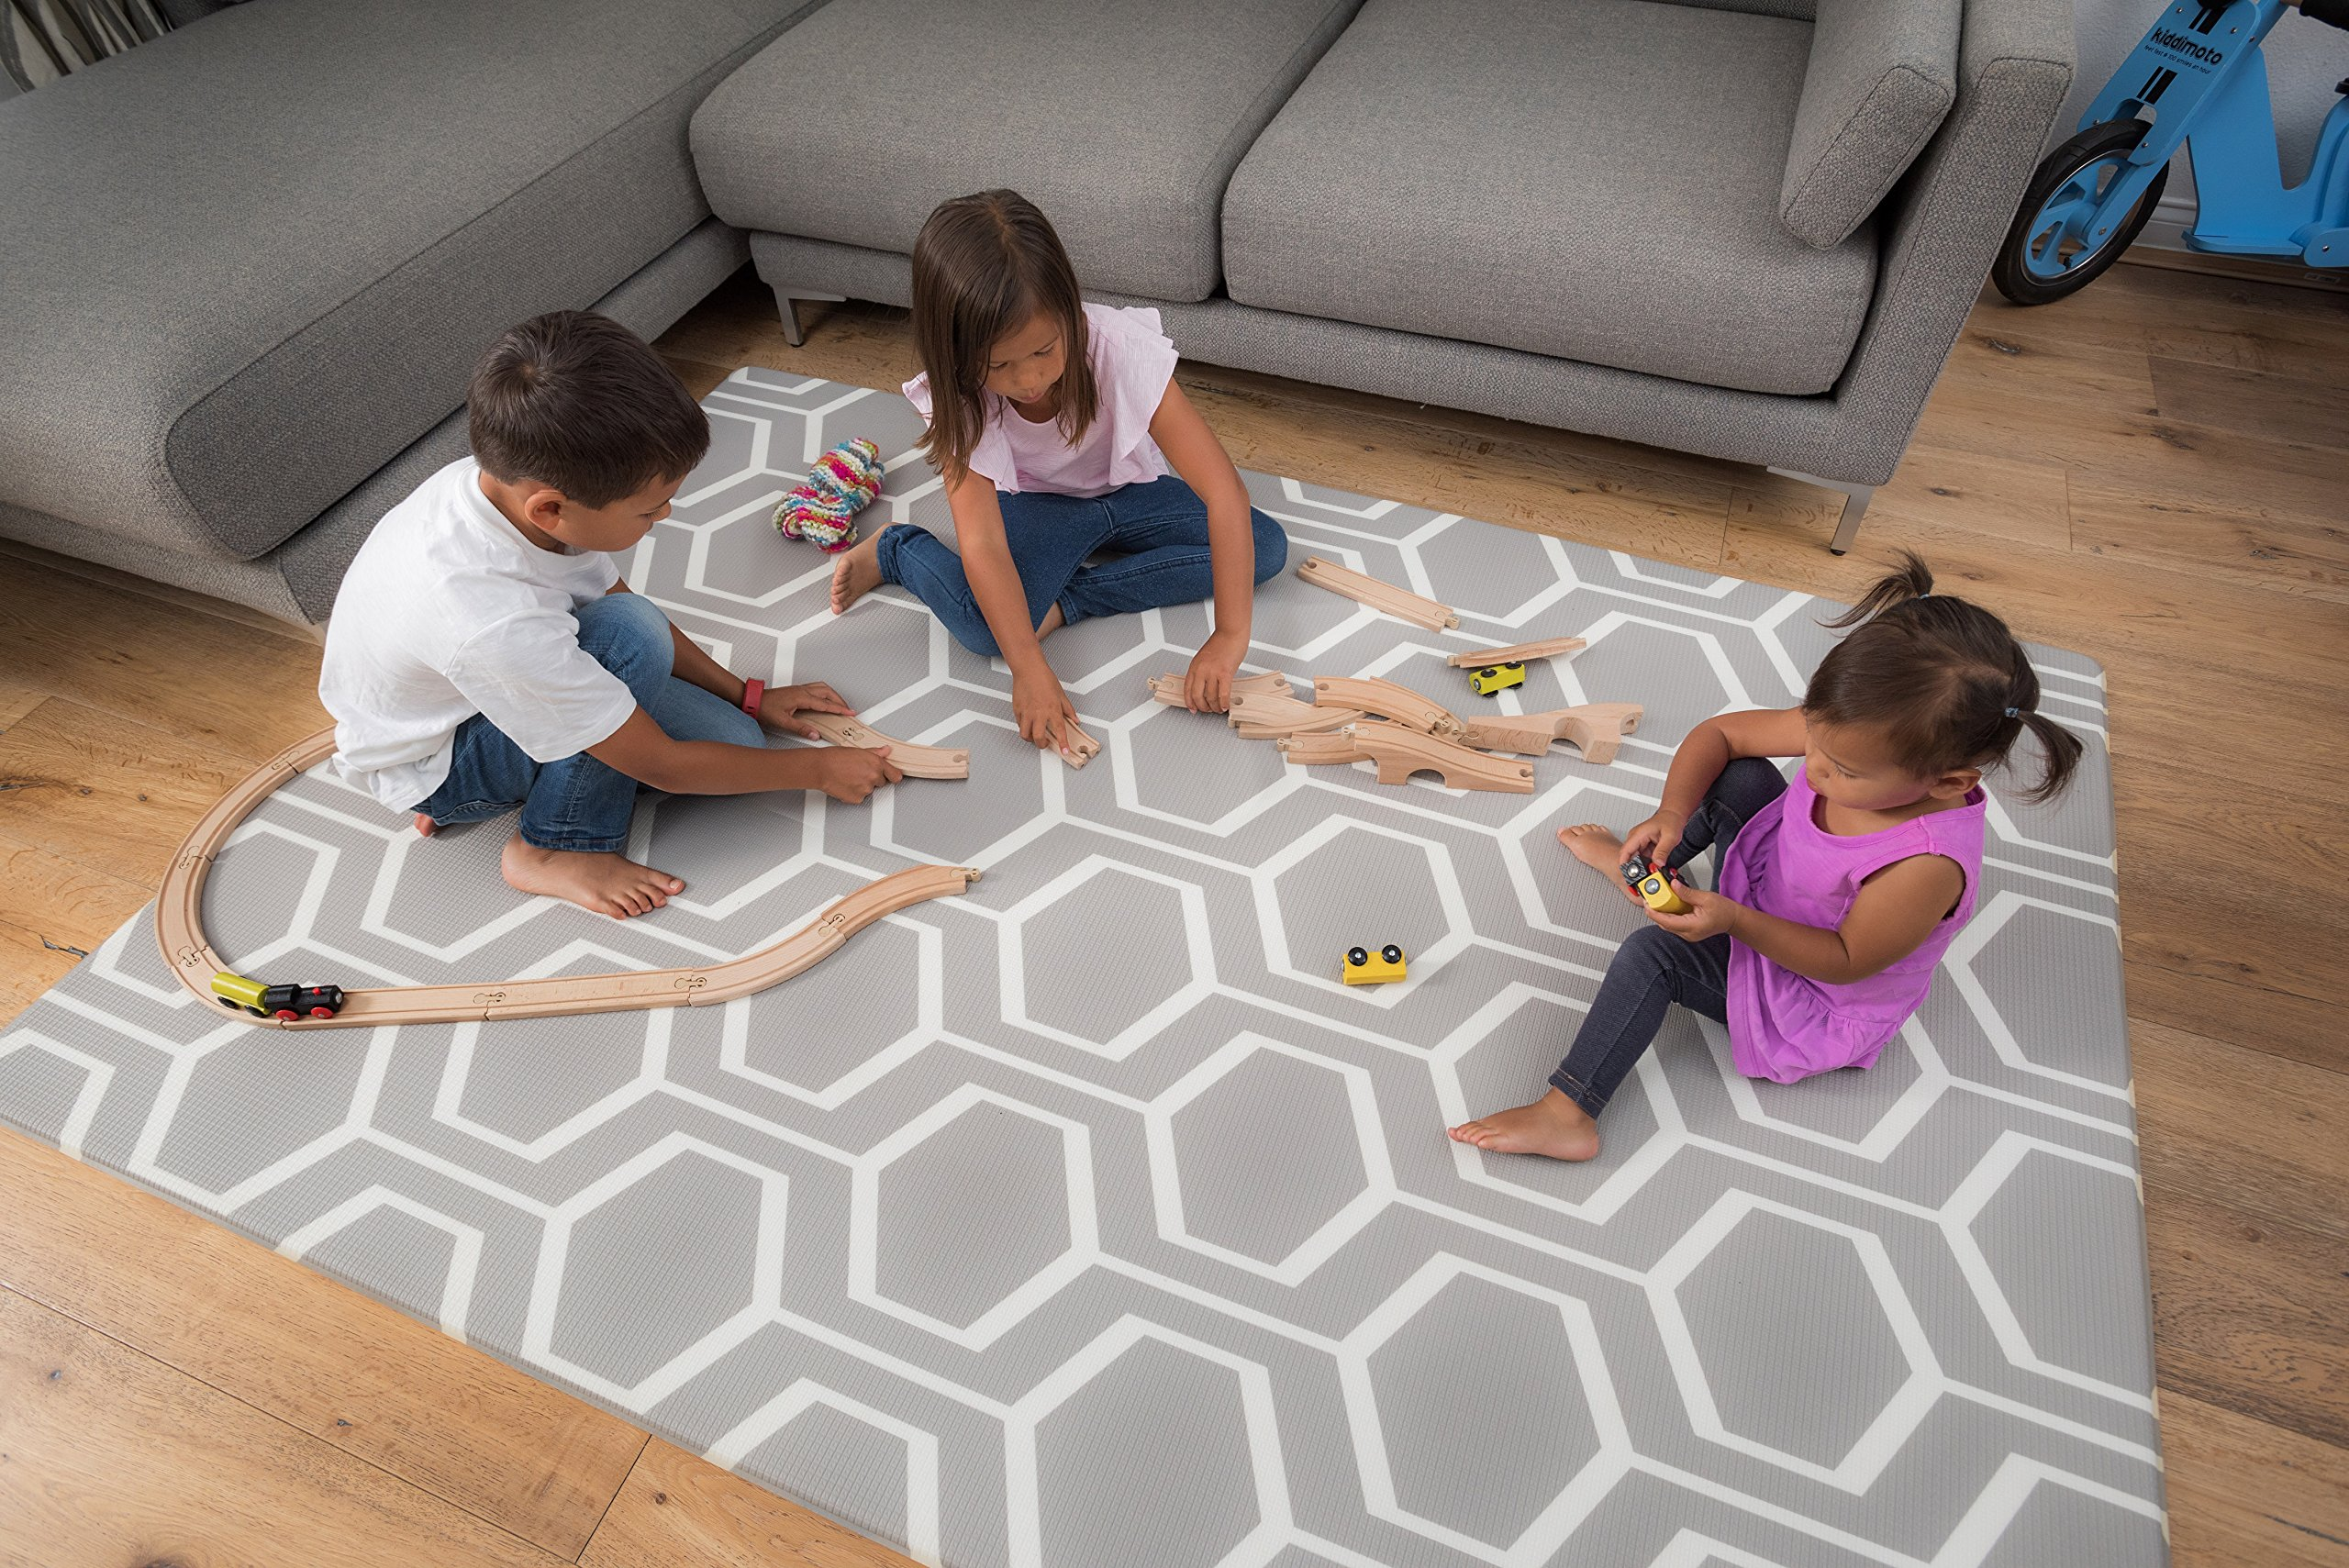 Tregolden Baby Play Mat - For Babies, Toddlers and Kids - Protect Your Child With This Stylish Soft Play Rug - Attractive, Modern and Sophisticated Design - Tested to Rigorous Safety Standards by Tregolden